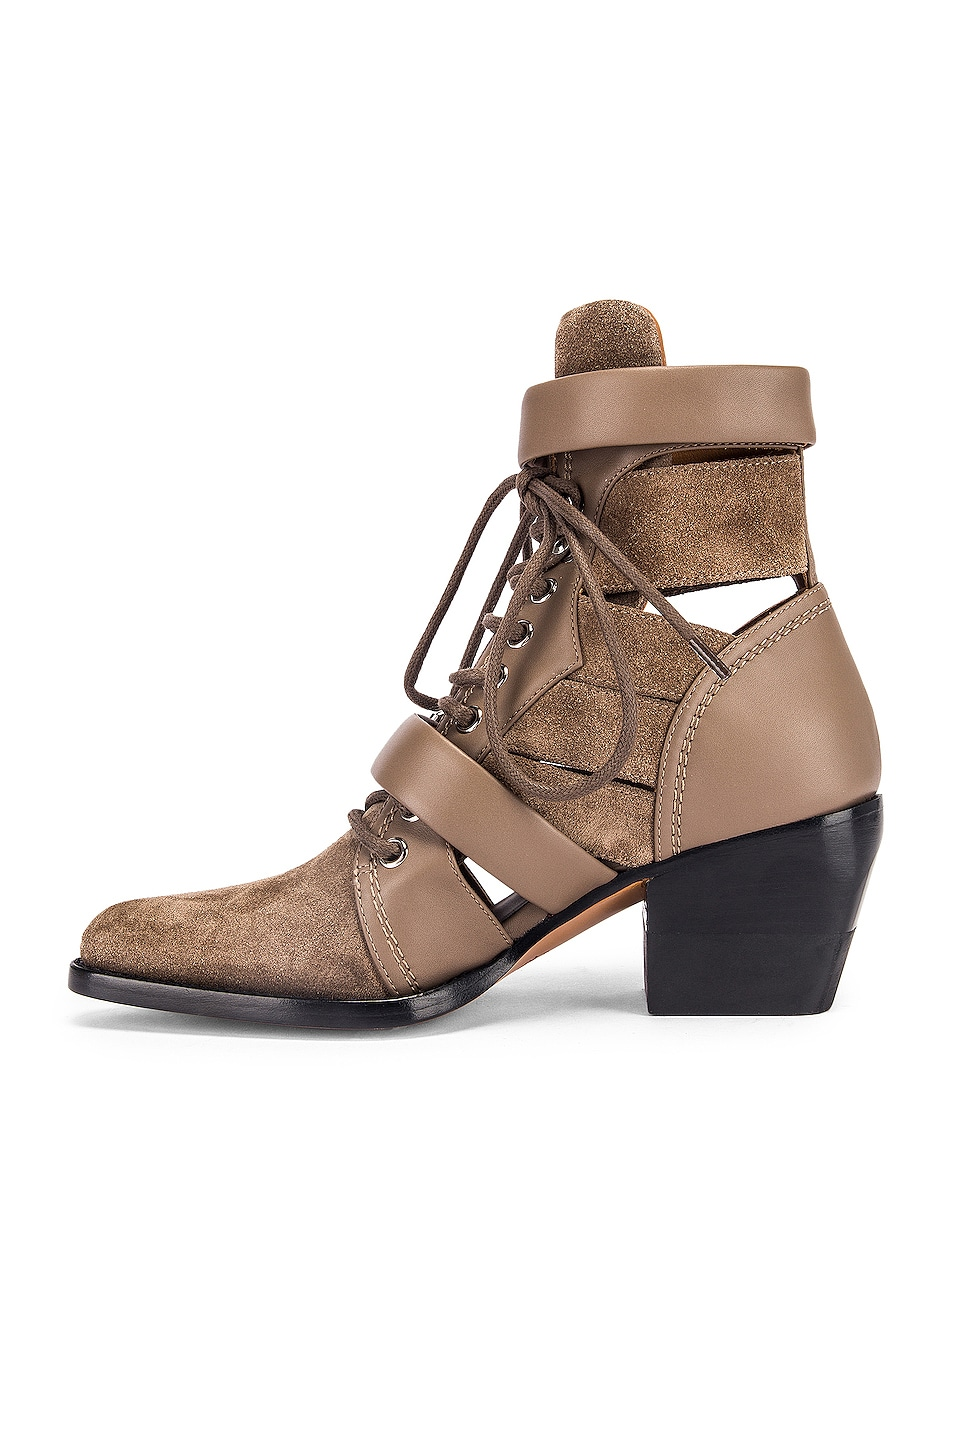 Image 5 of Chloe Lace Up Buckle Boots in Motty Grey